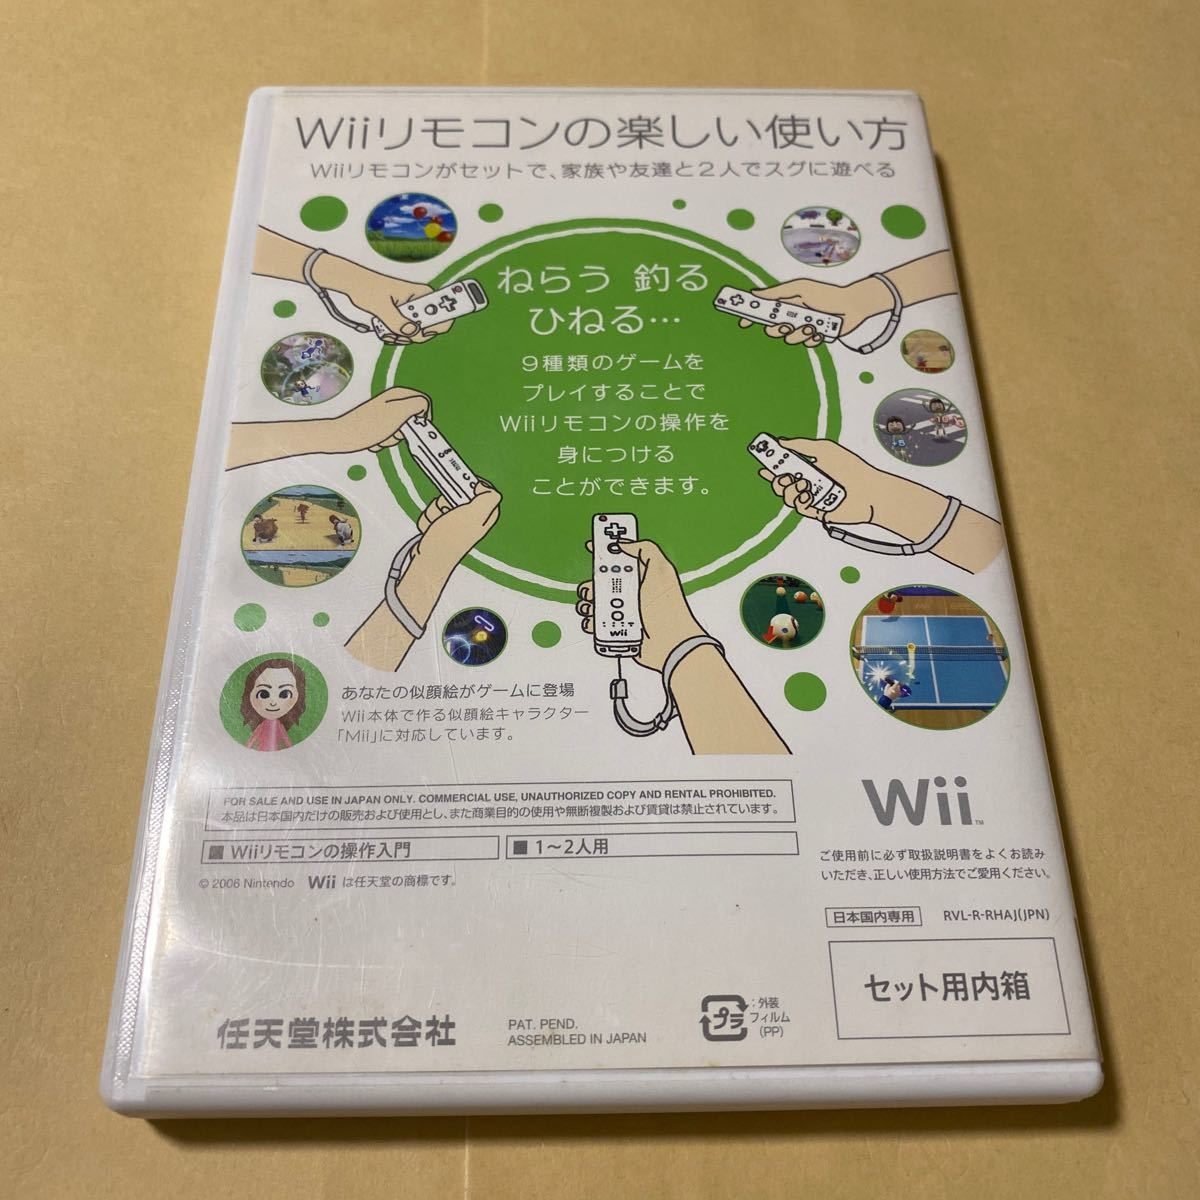 Wiiスポーツリゾートと はじめてのWii